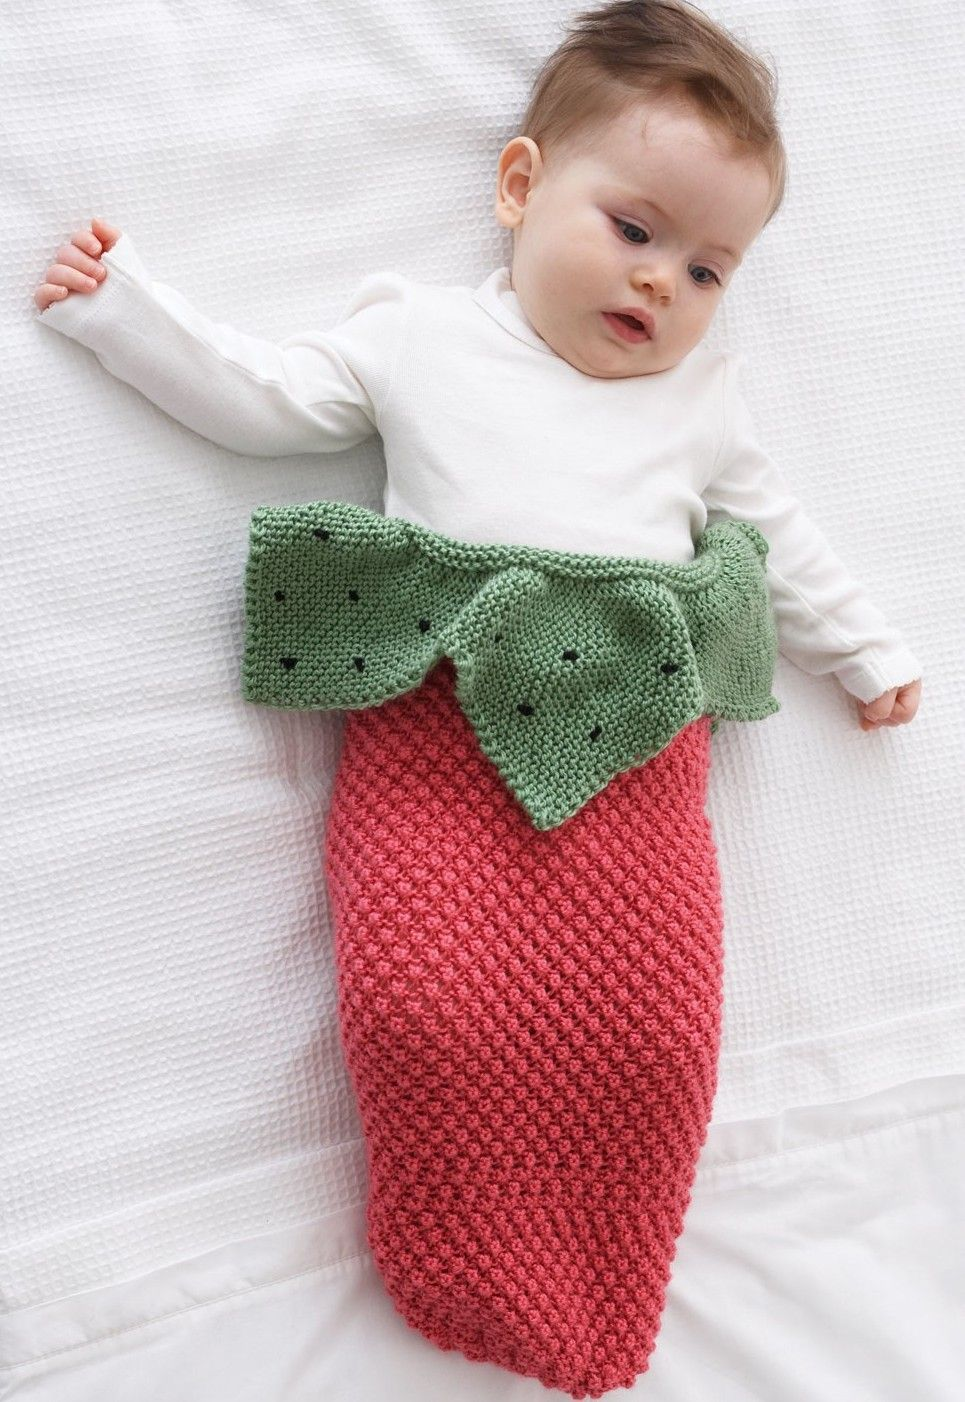 Baby Cocoon, Snuggly, Sleep Sack, Wrap Knitting Patterns | Baby ...